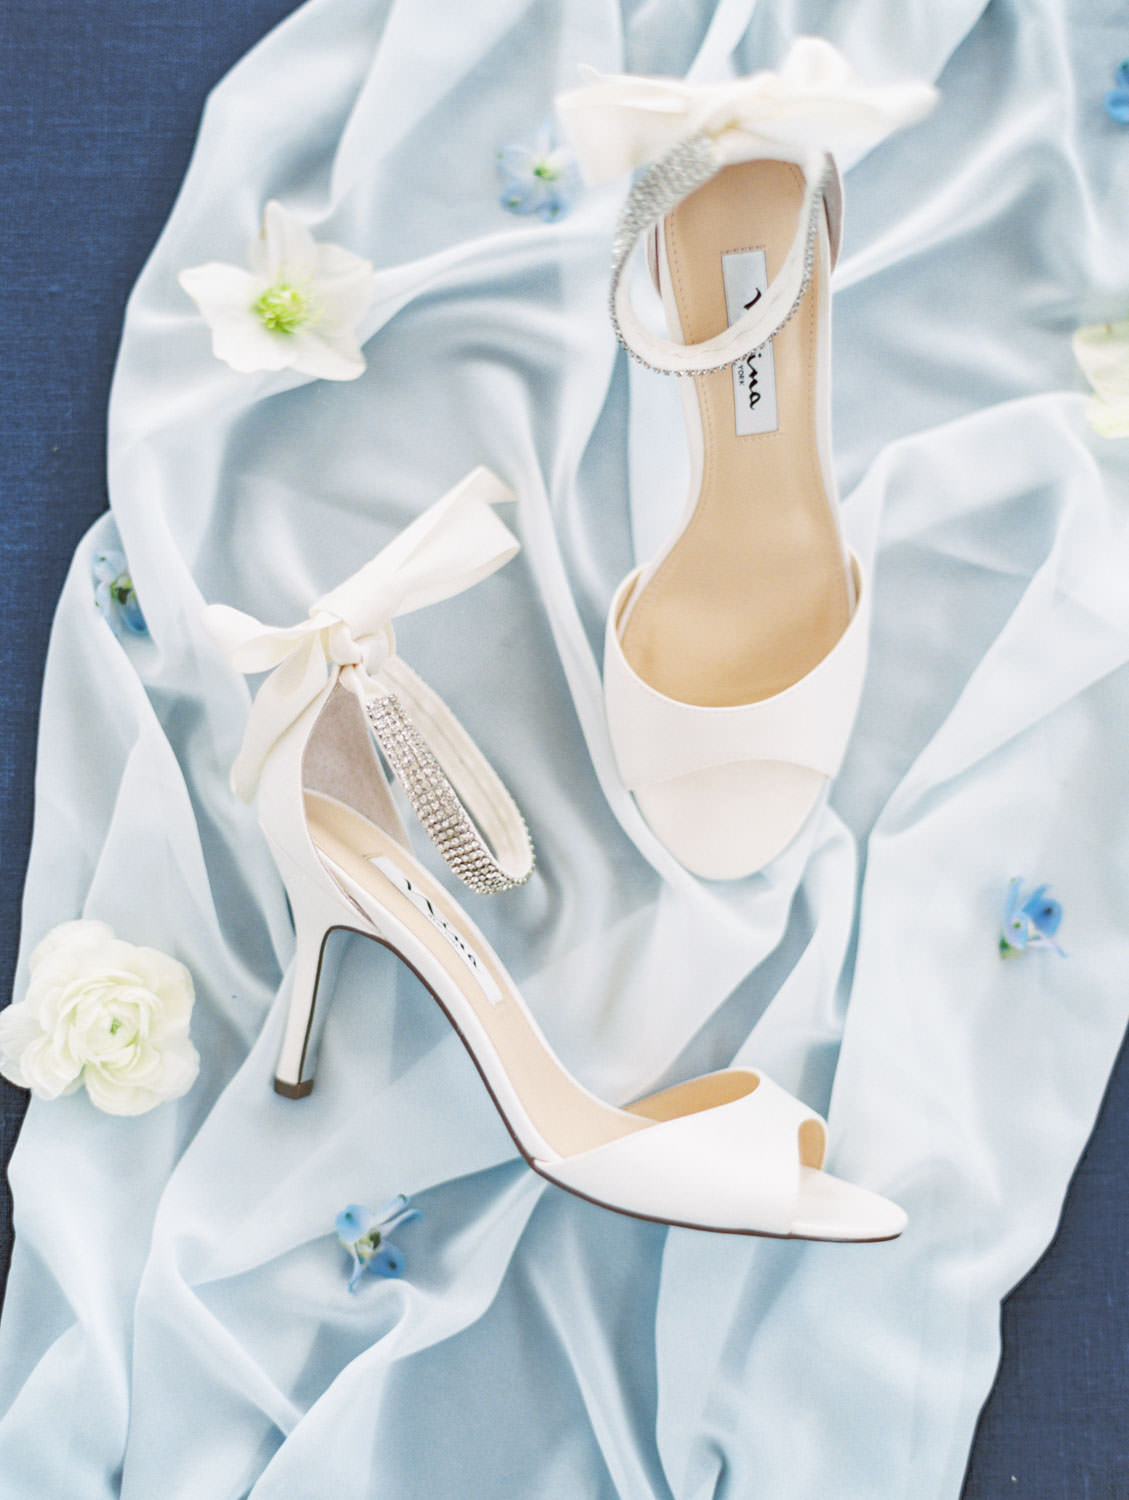 Ivory peep toe silk wedding heels with bow tied at the back shot on film on a navy styling board, Intimate Wedding at La Valencia Hotel in La Jolla by Cavin Elizabeth Photography